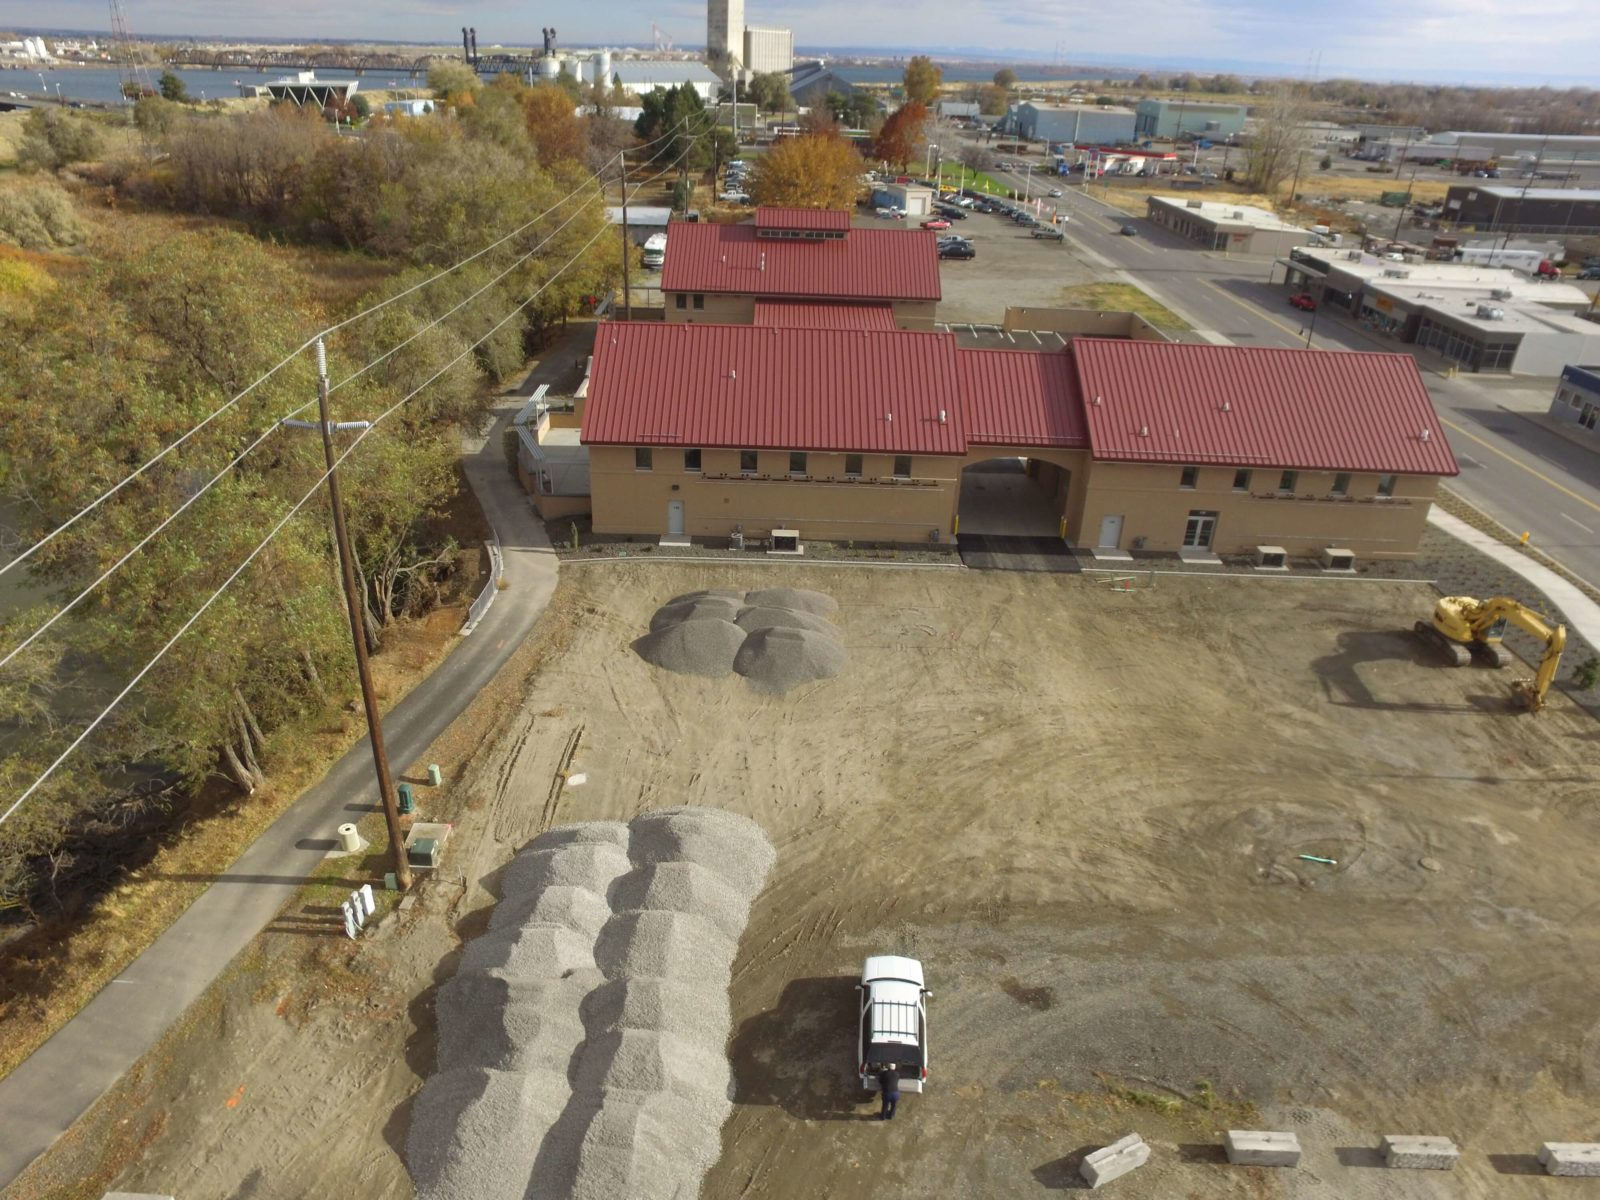 Columbia Gardens wastewater treatment facility under construction.